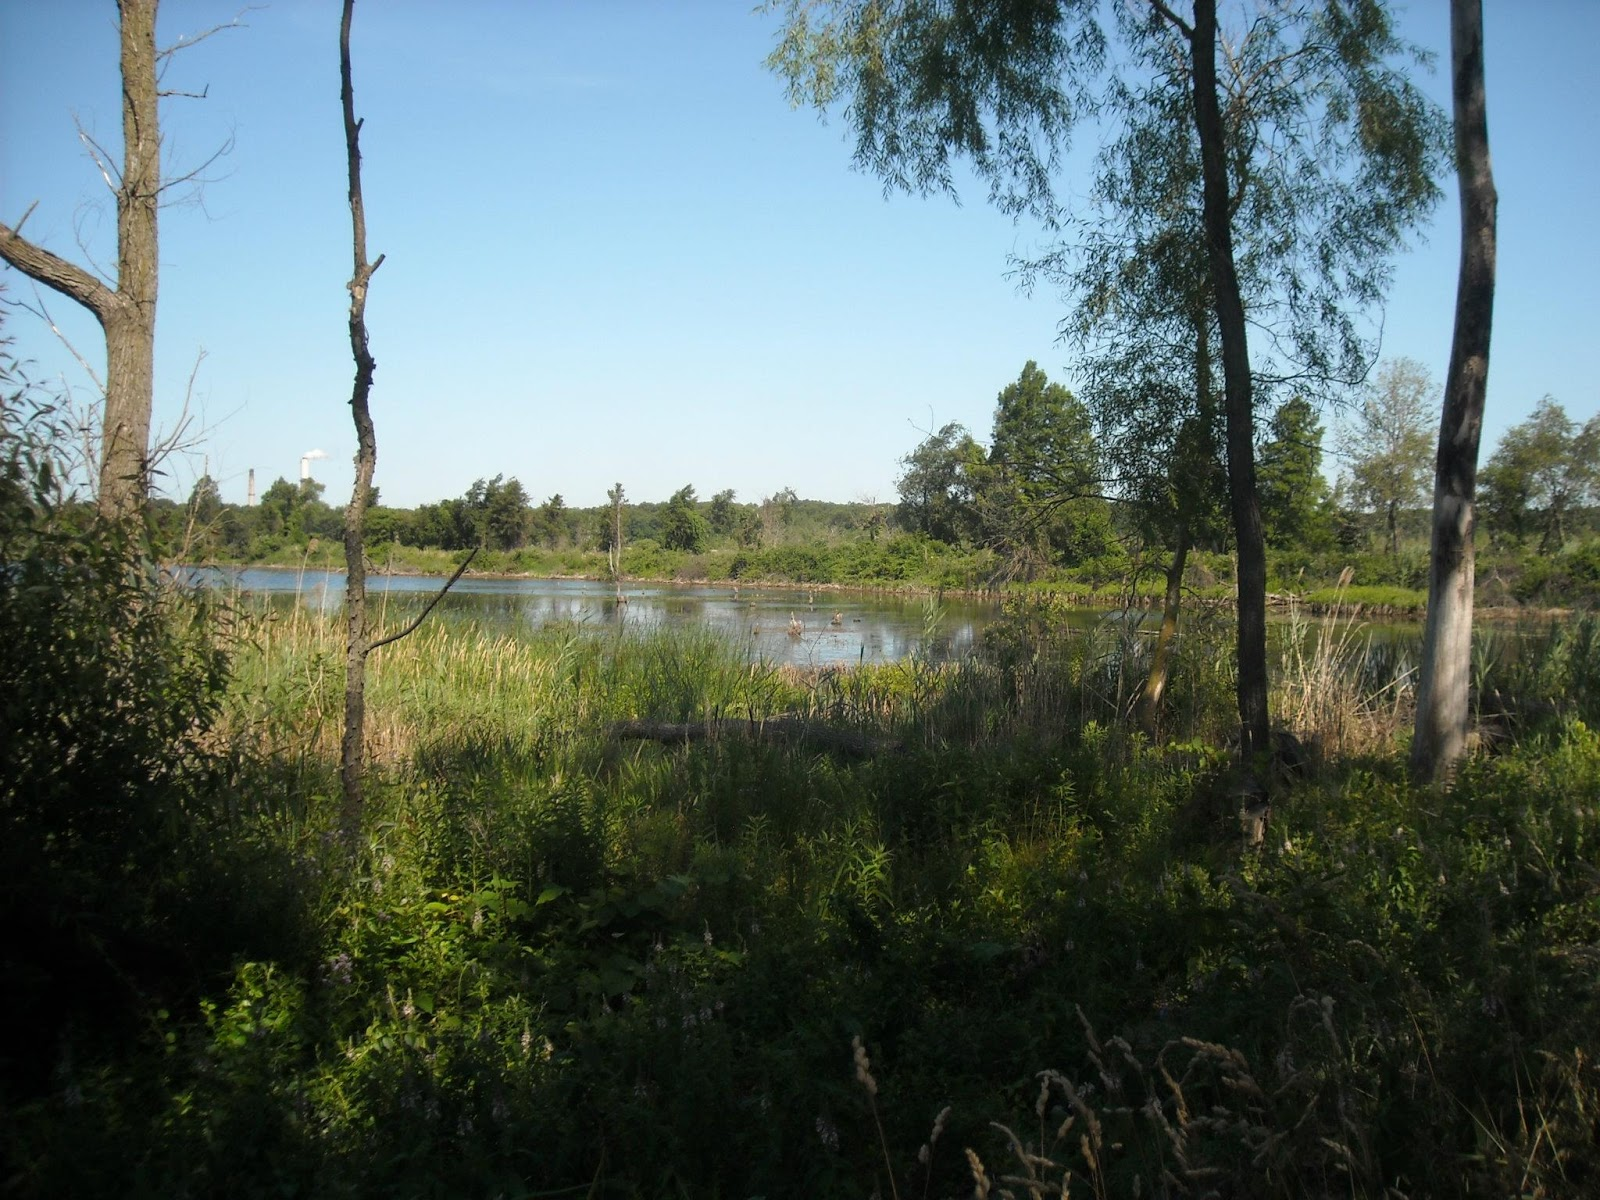 figure 6 a fen in the indiana dunes region